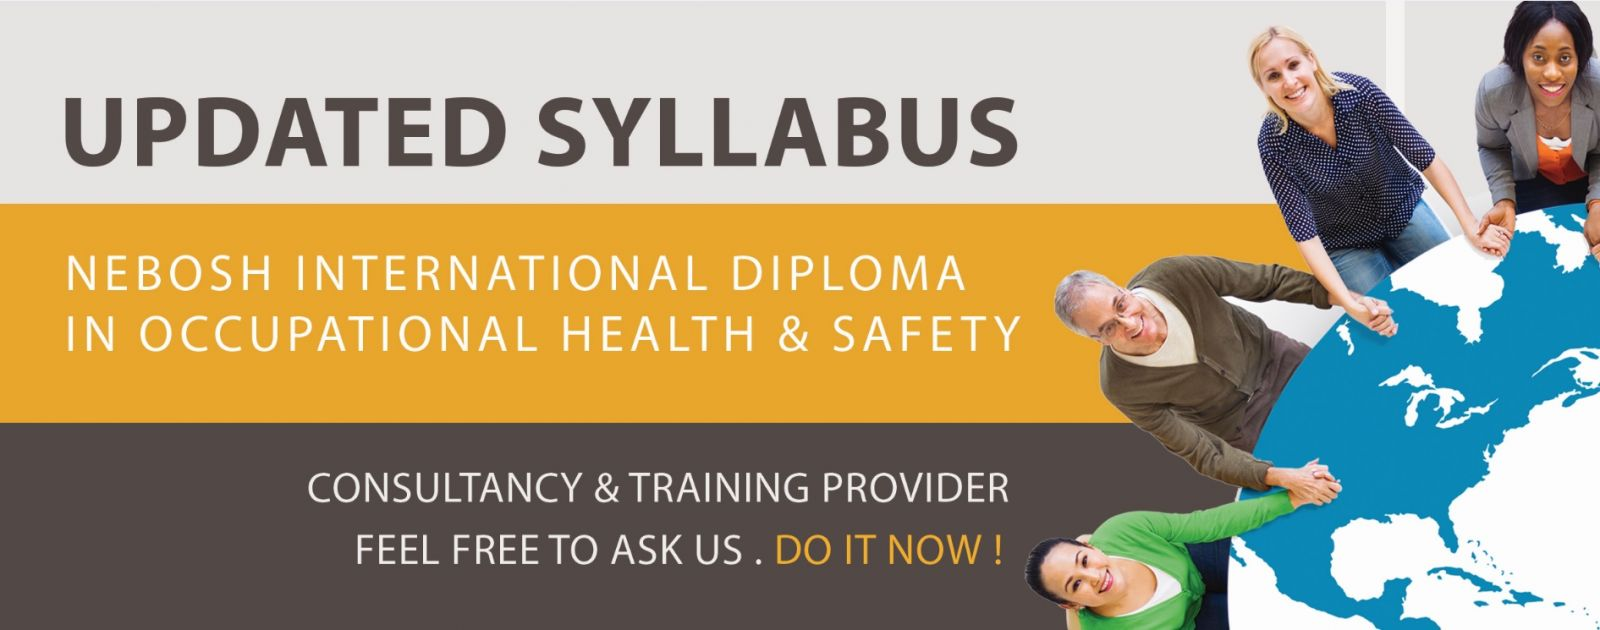 Updated Syllabus Of NEBOSH International Diploma In Occupational Health Safety